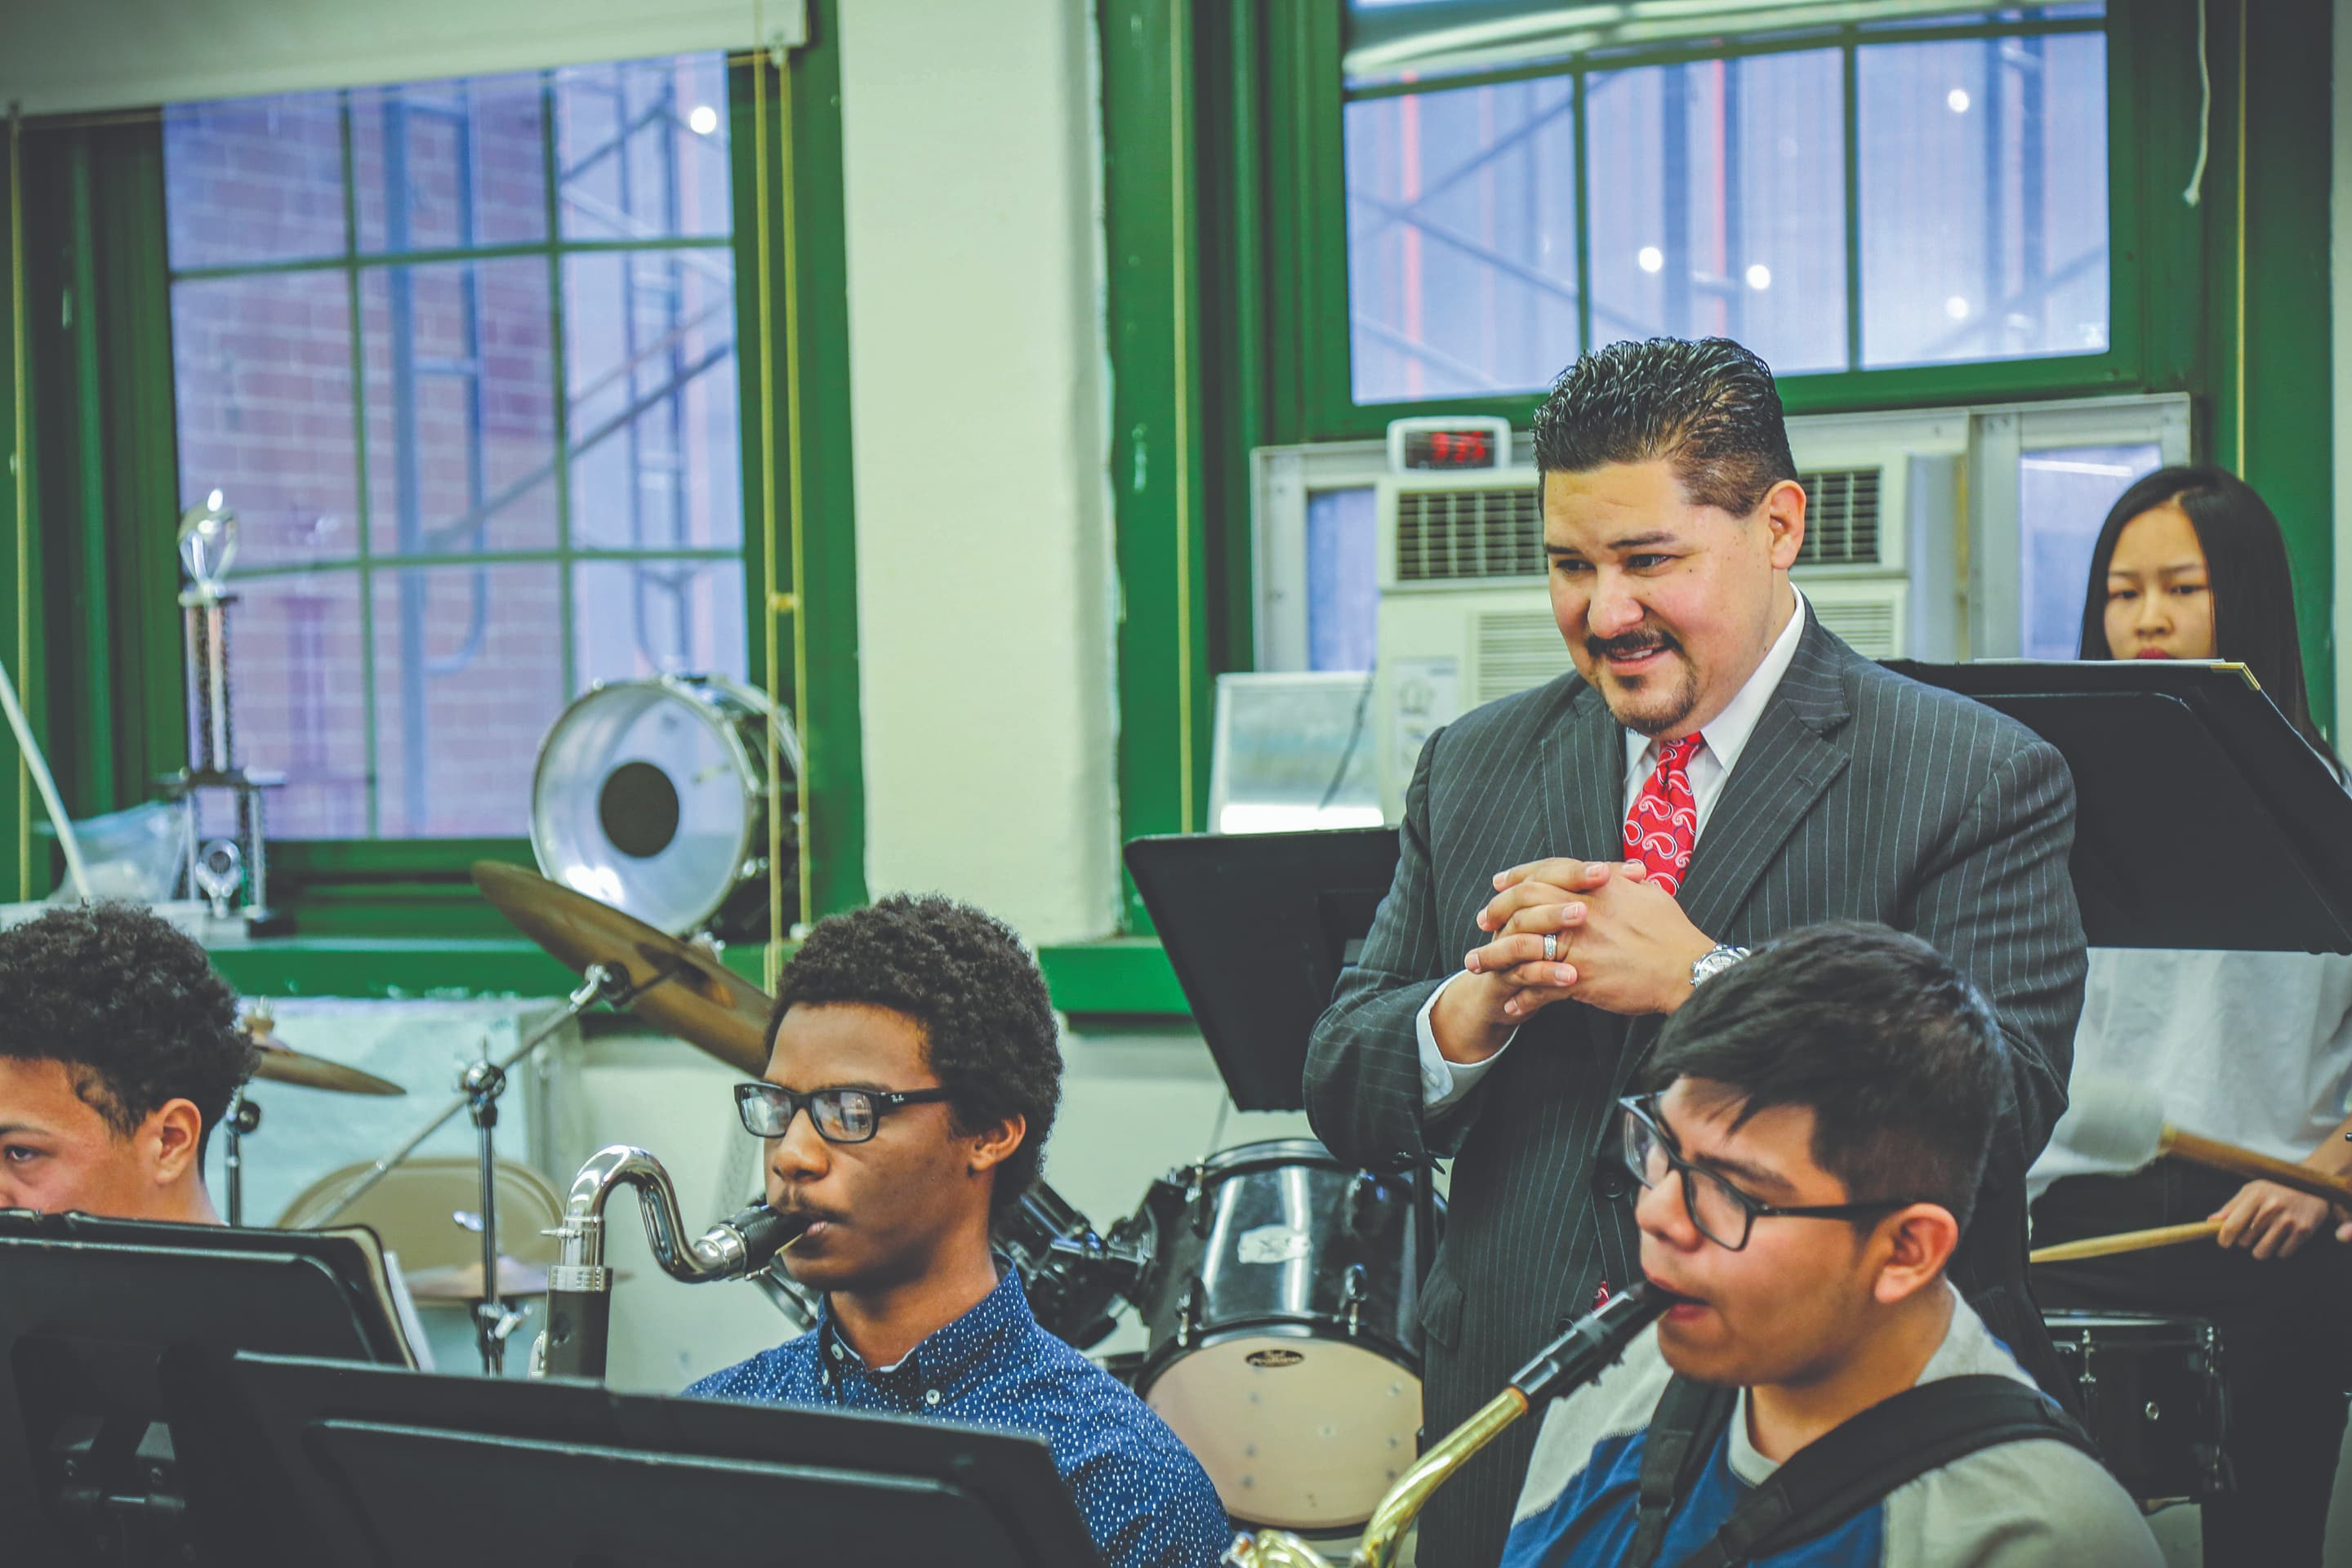 Chancellor Carranza listening to band students play in classroom